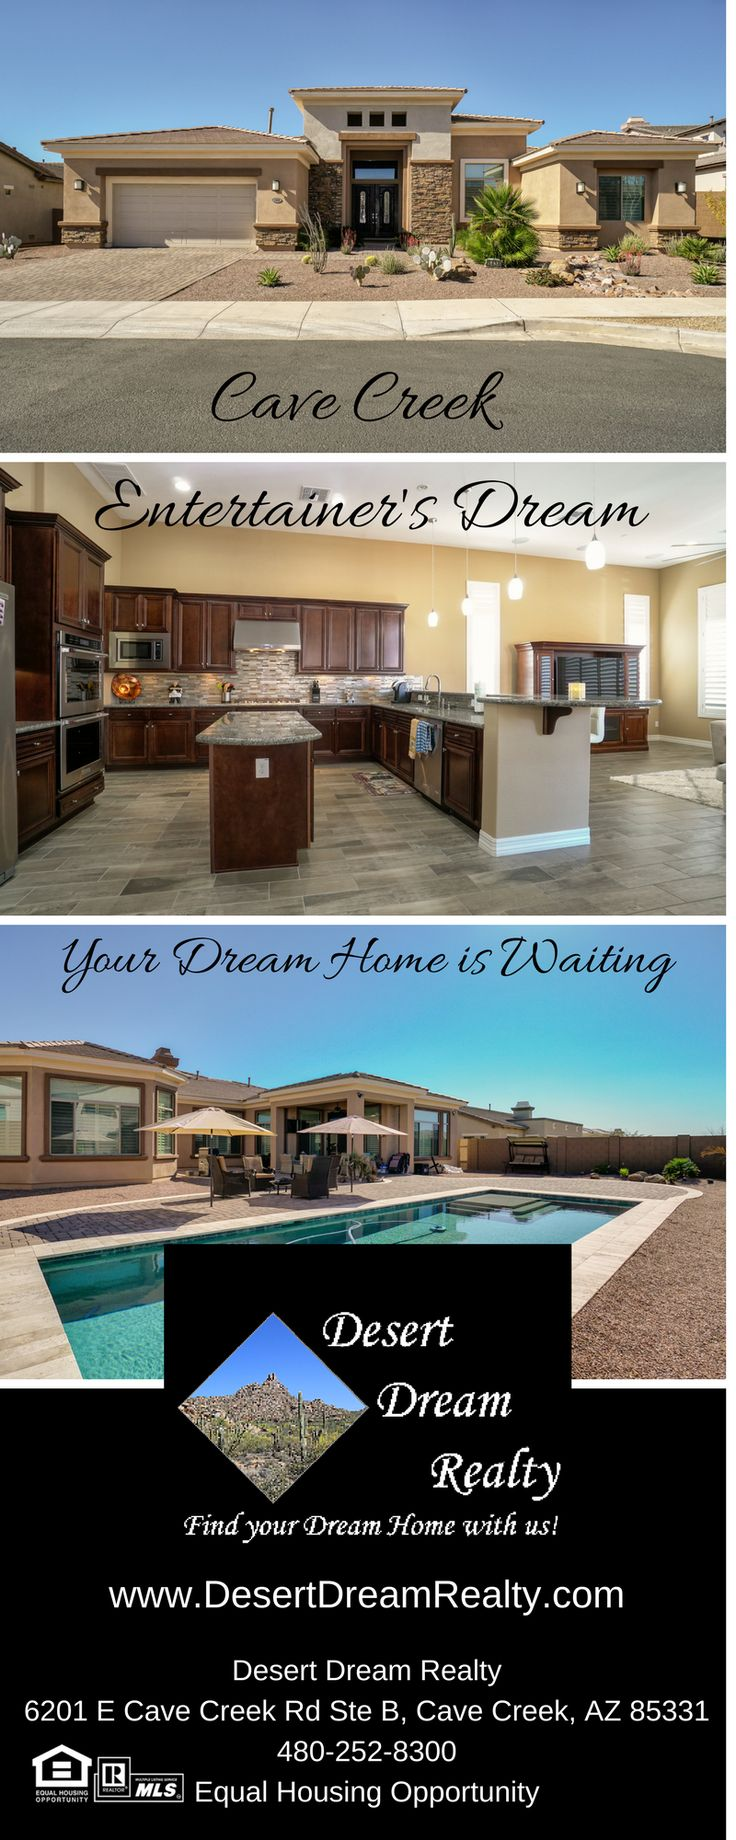 5438 E LAS PIEDRAS Way, Cave Creek, AZ 85331 - Desert Dream Realty - http://www.desertdreamrealty.com/listings/details/5438-e-las-piedras-way-cave-creek-az/5729367/443228/